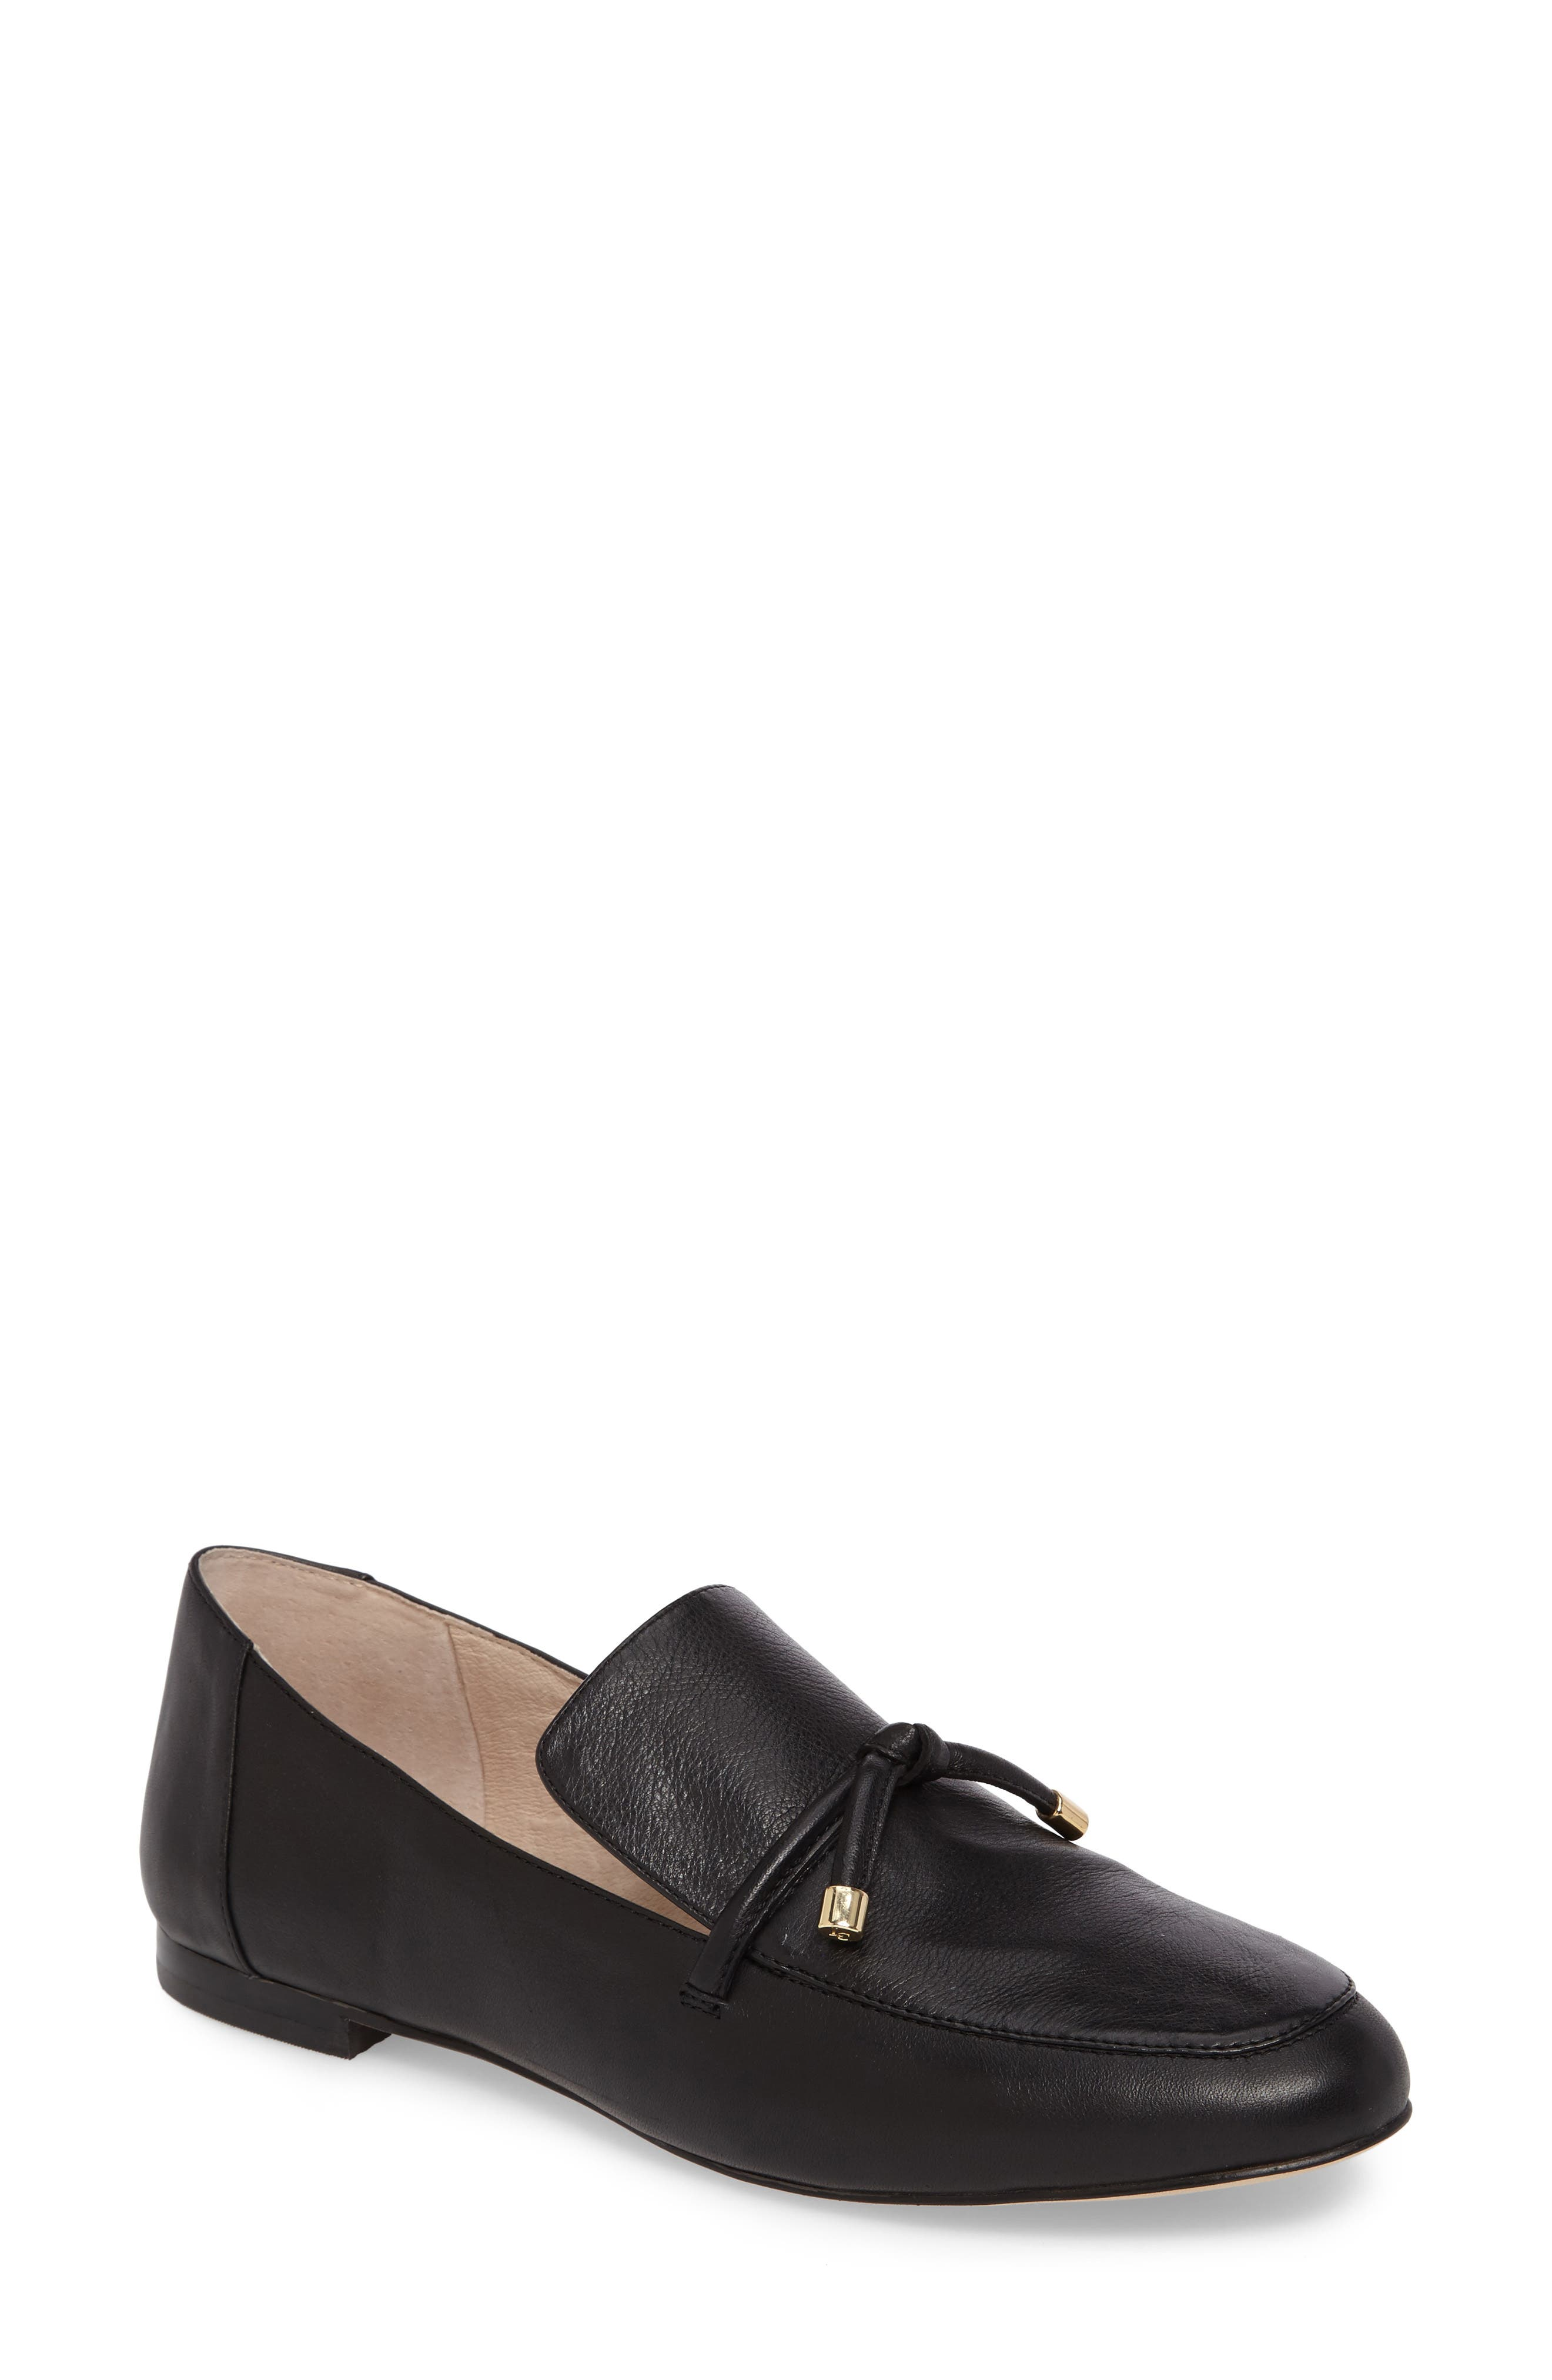 Faylen Loafer,                             Main thumbnail 1, color,